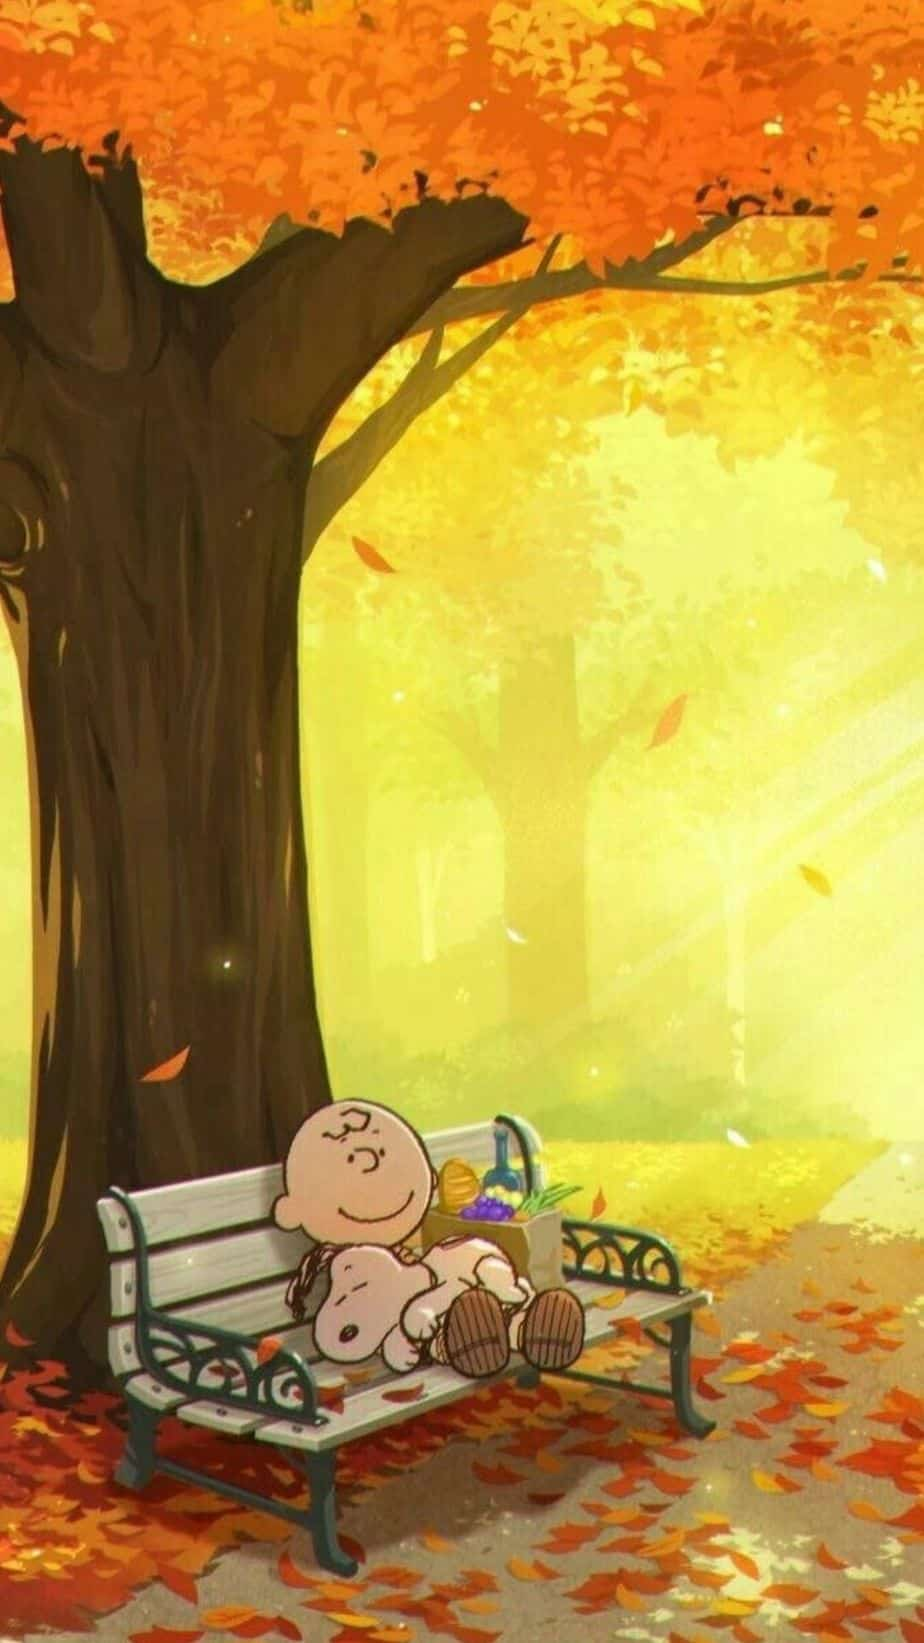 Snoopy Fall Wallpaper.You can always make your iPhone look aesthetic with cute wallpapers, these 40 beautiful and aesthetic autumn fall wallpapers for your iPhone will make you feel that autumnal fall vibes.